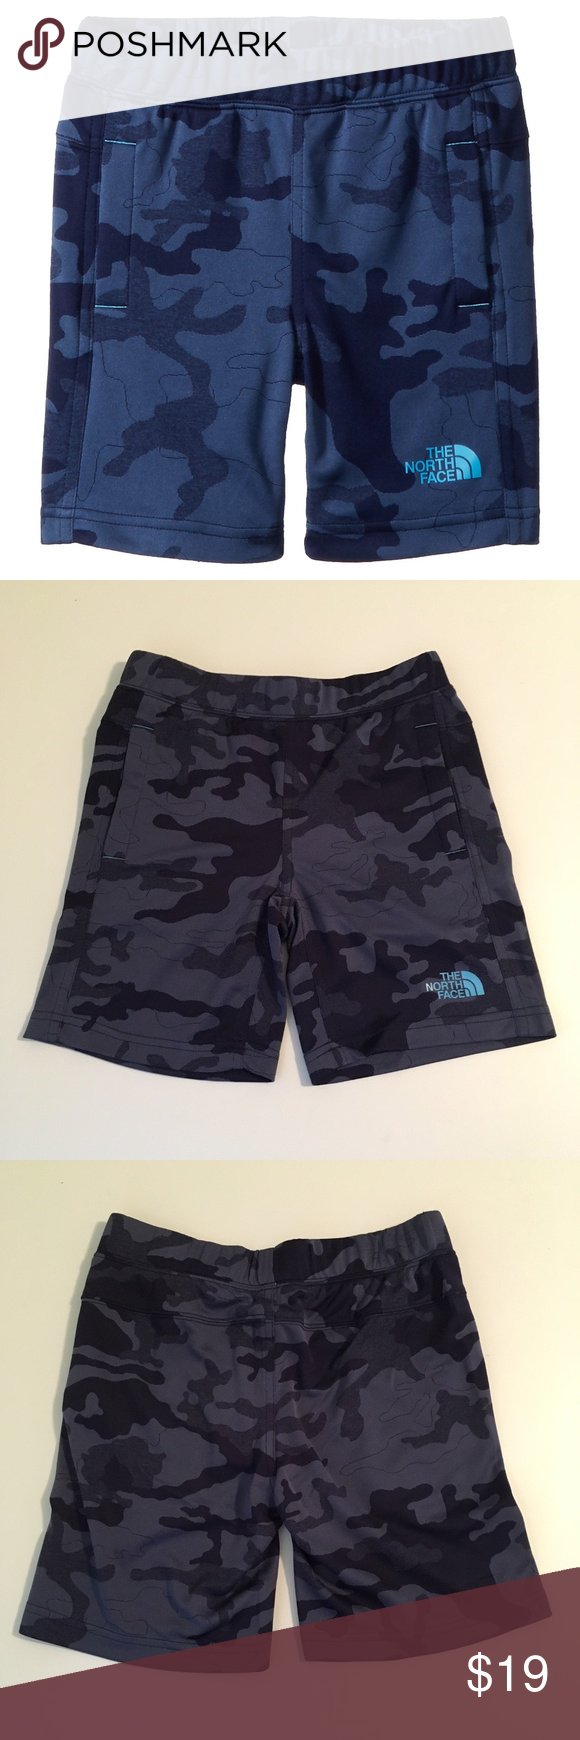 f7ce90176 The North Face Kids Blue Camo Mak Shorts New with tags. Tiny fabric ...